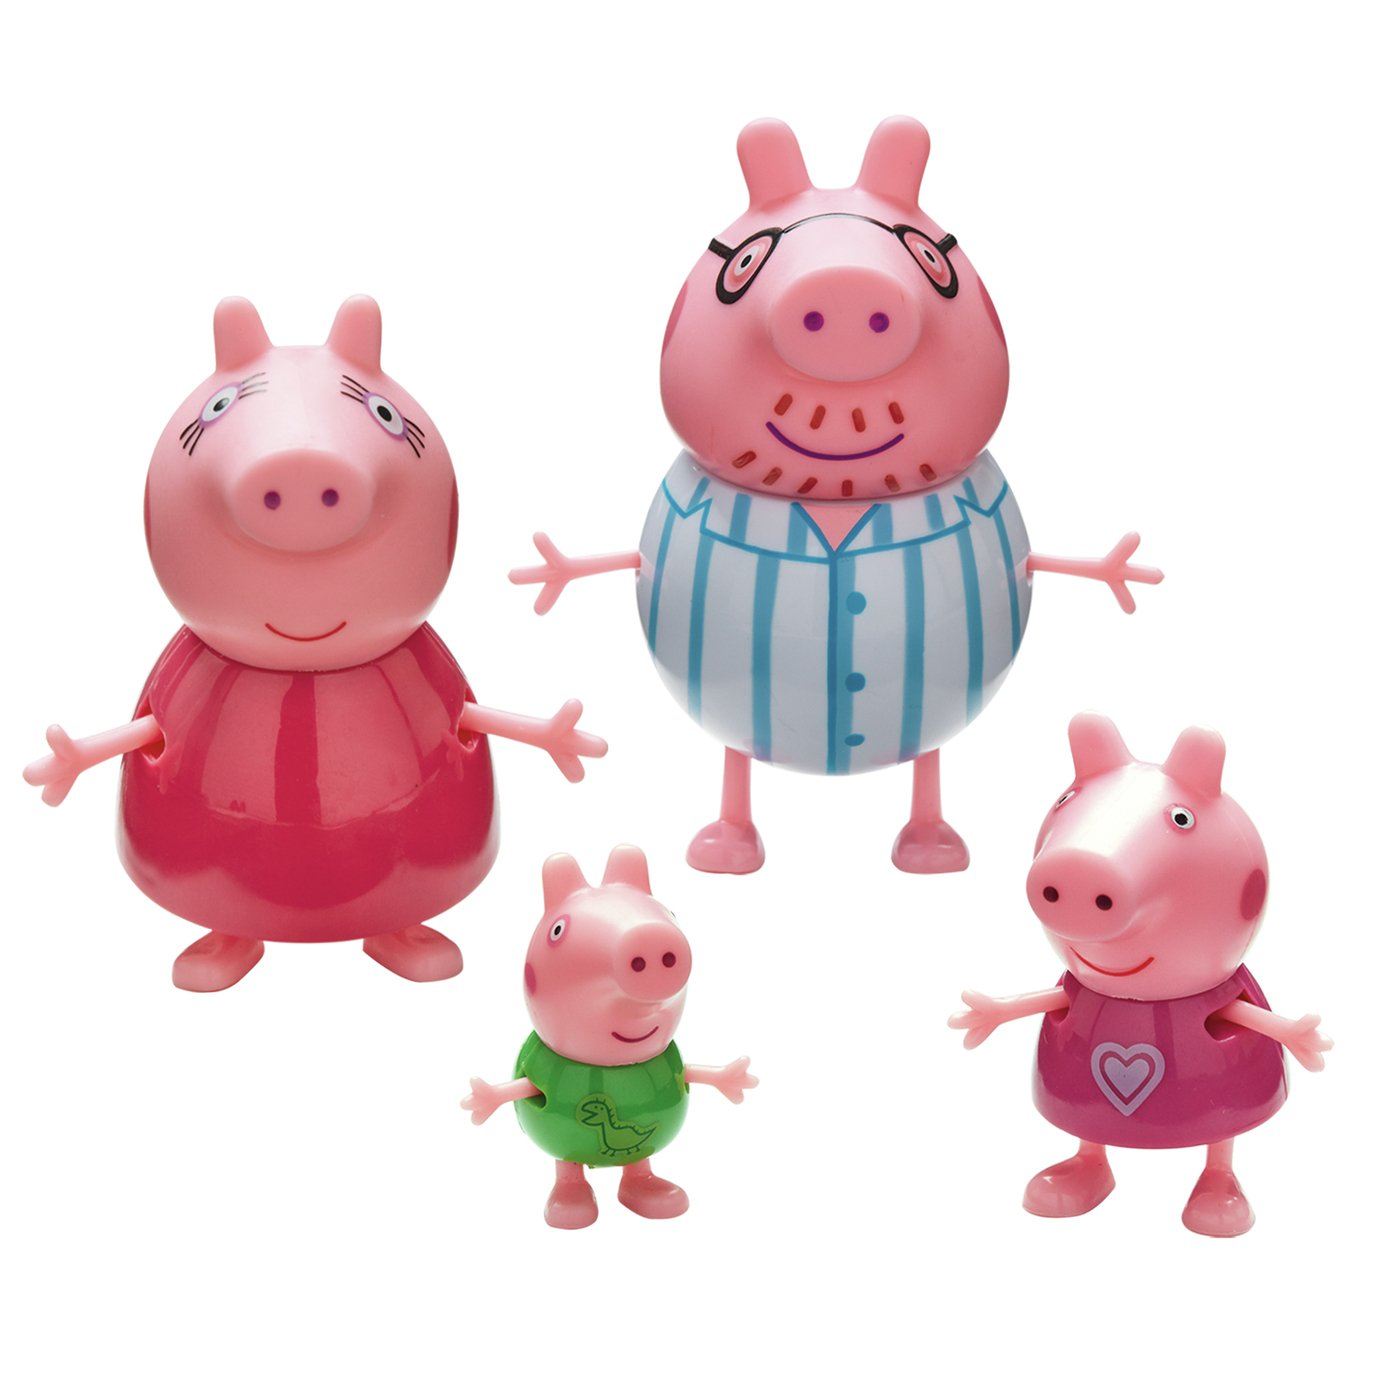 Peppa Pig Family Figures - 4 Pack from Peppa pig